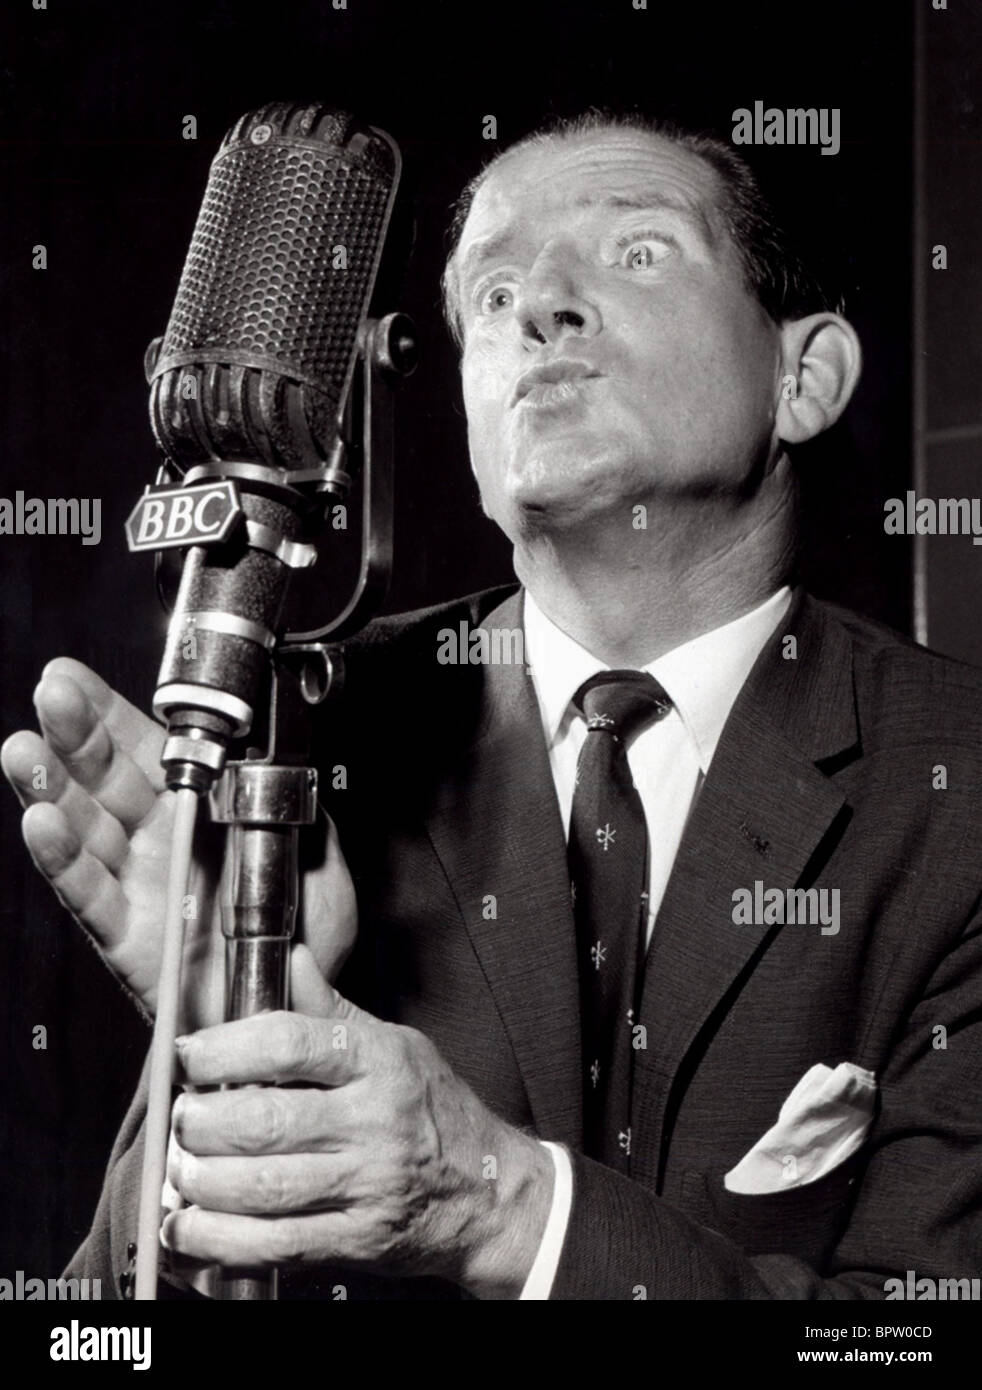 TED RAY ACTOR & COMEDIAN (1959) - Stock Image